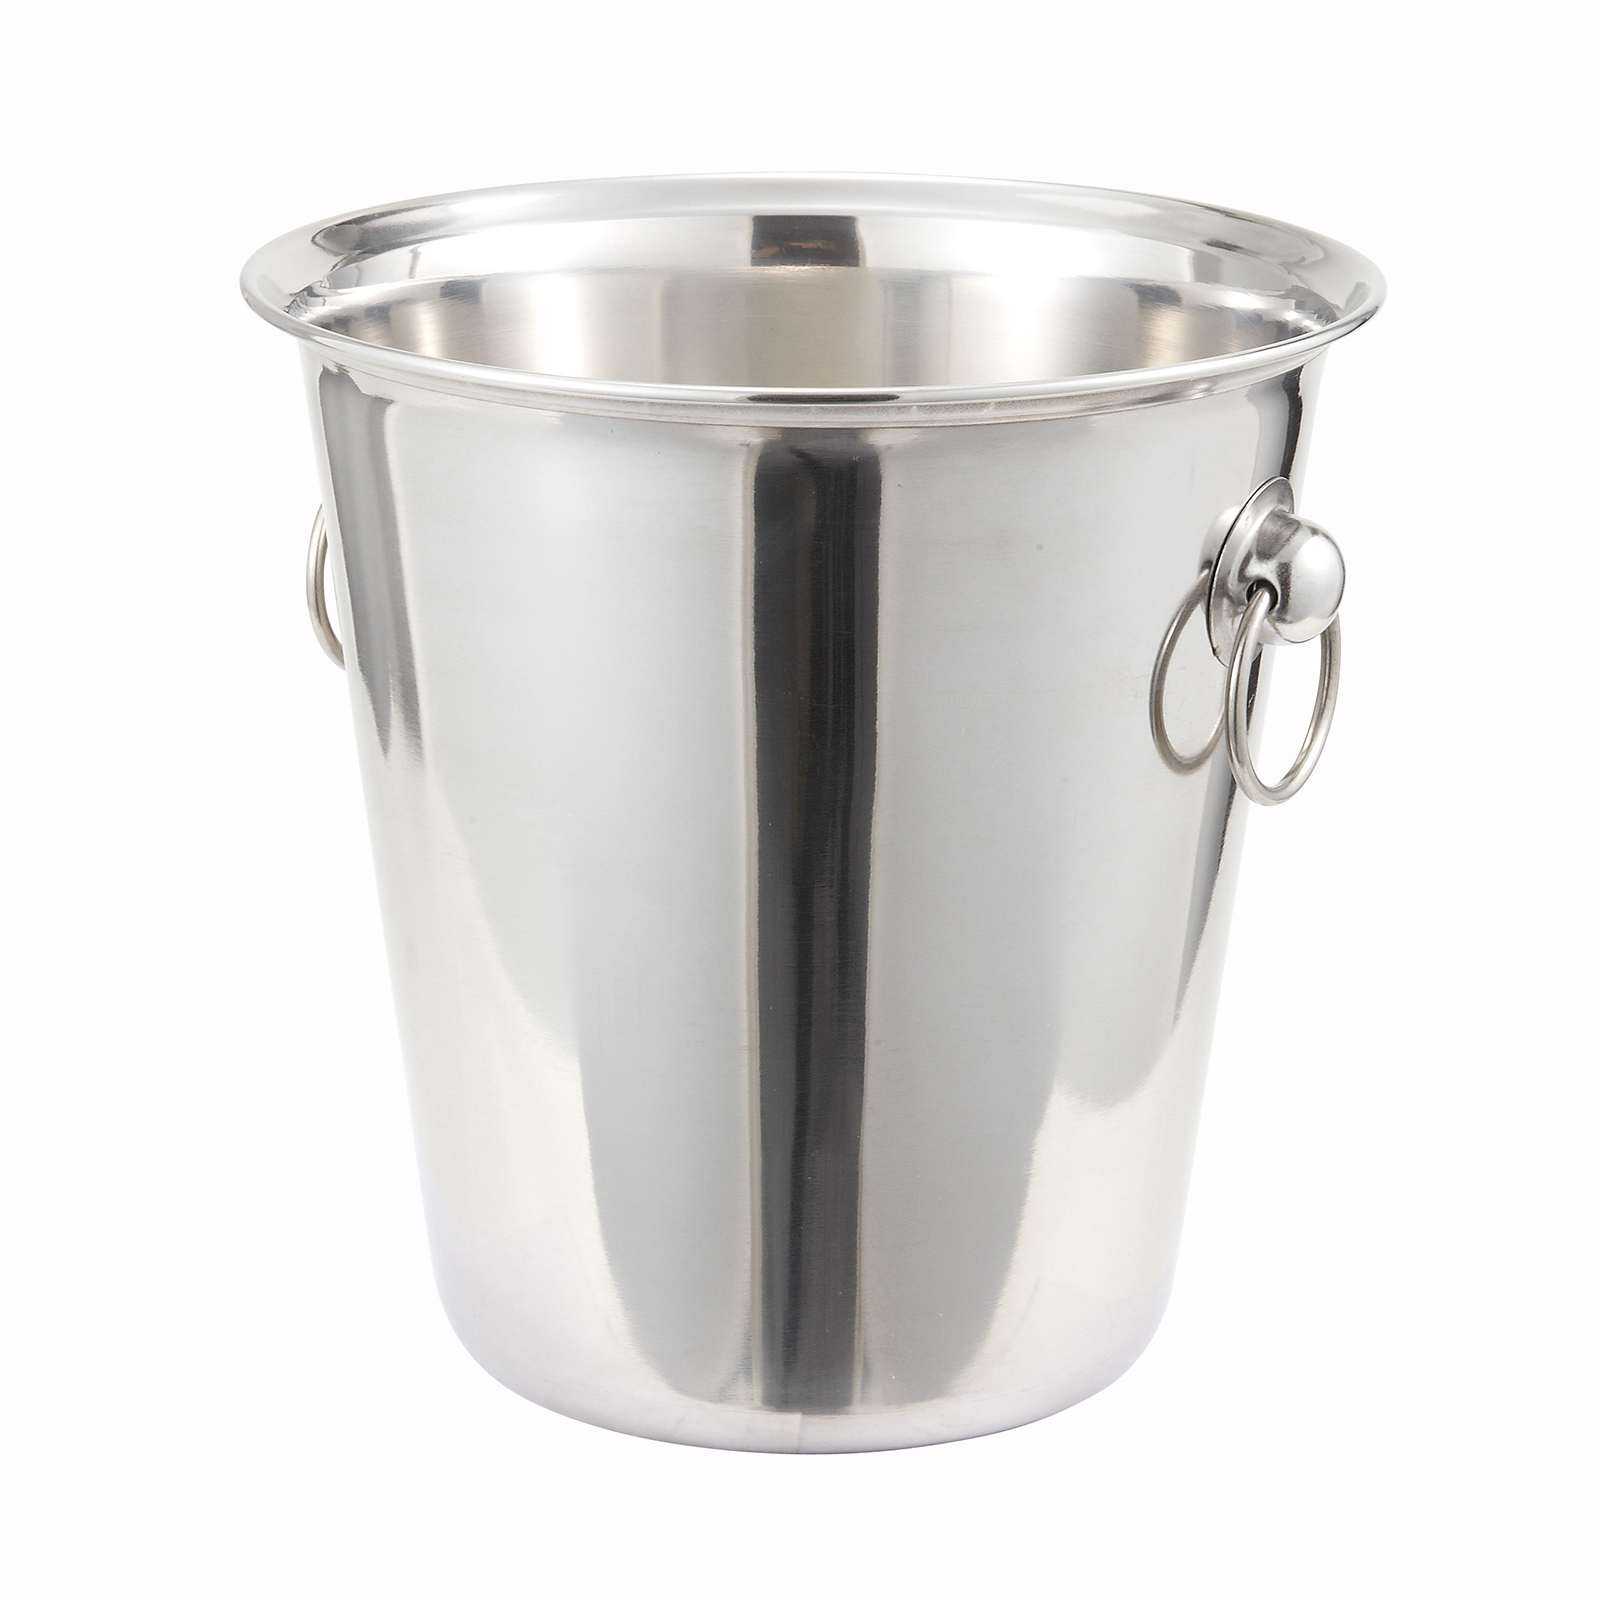 Winco WB-4 wine bucket / cooler